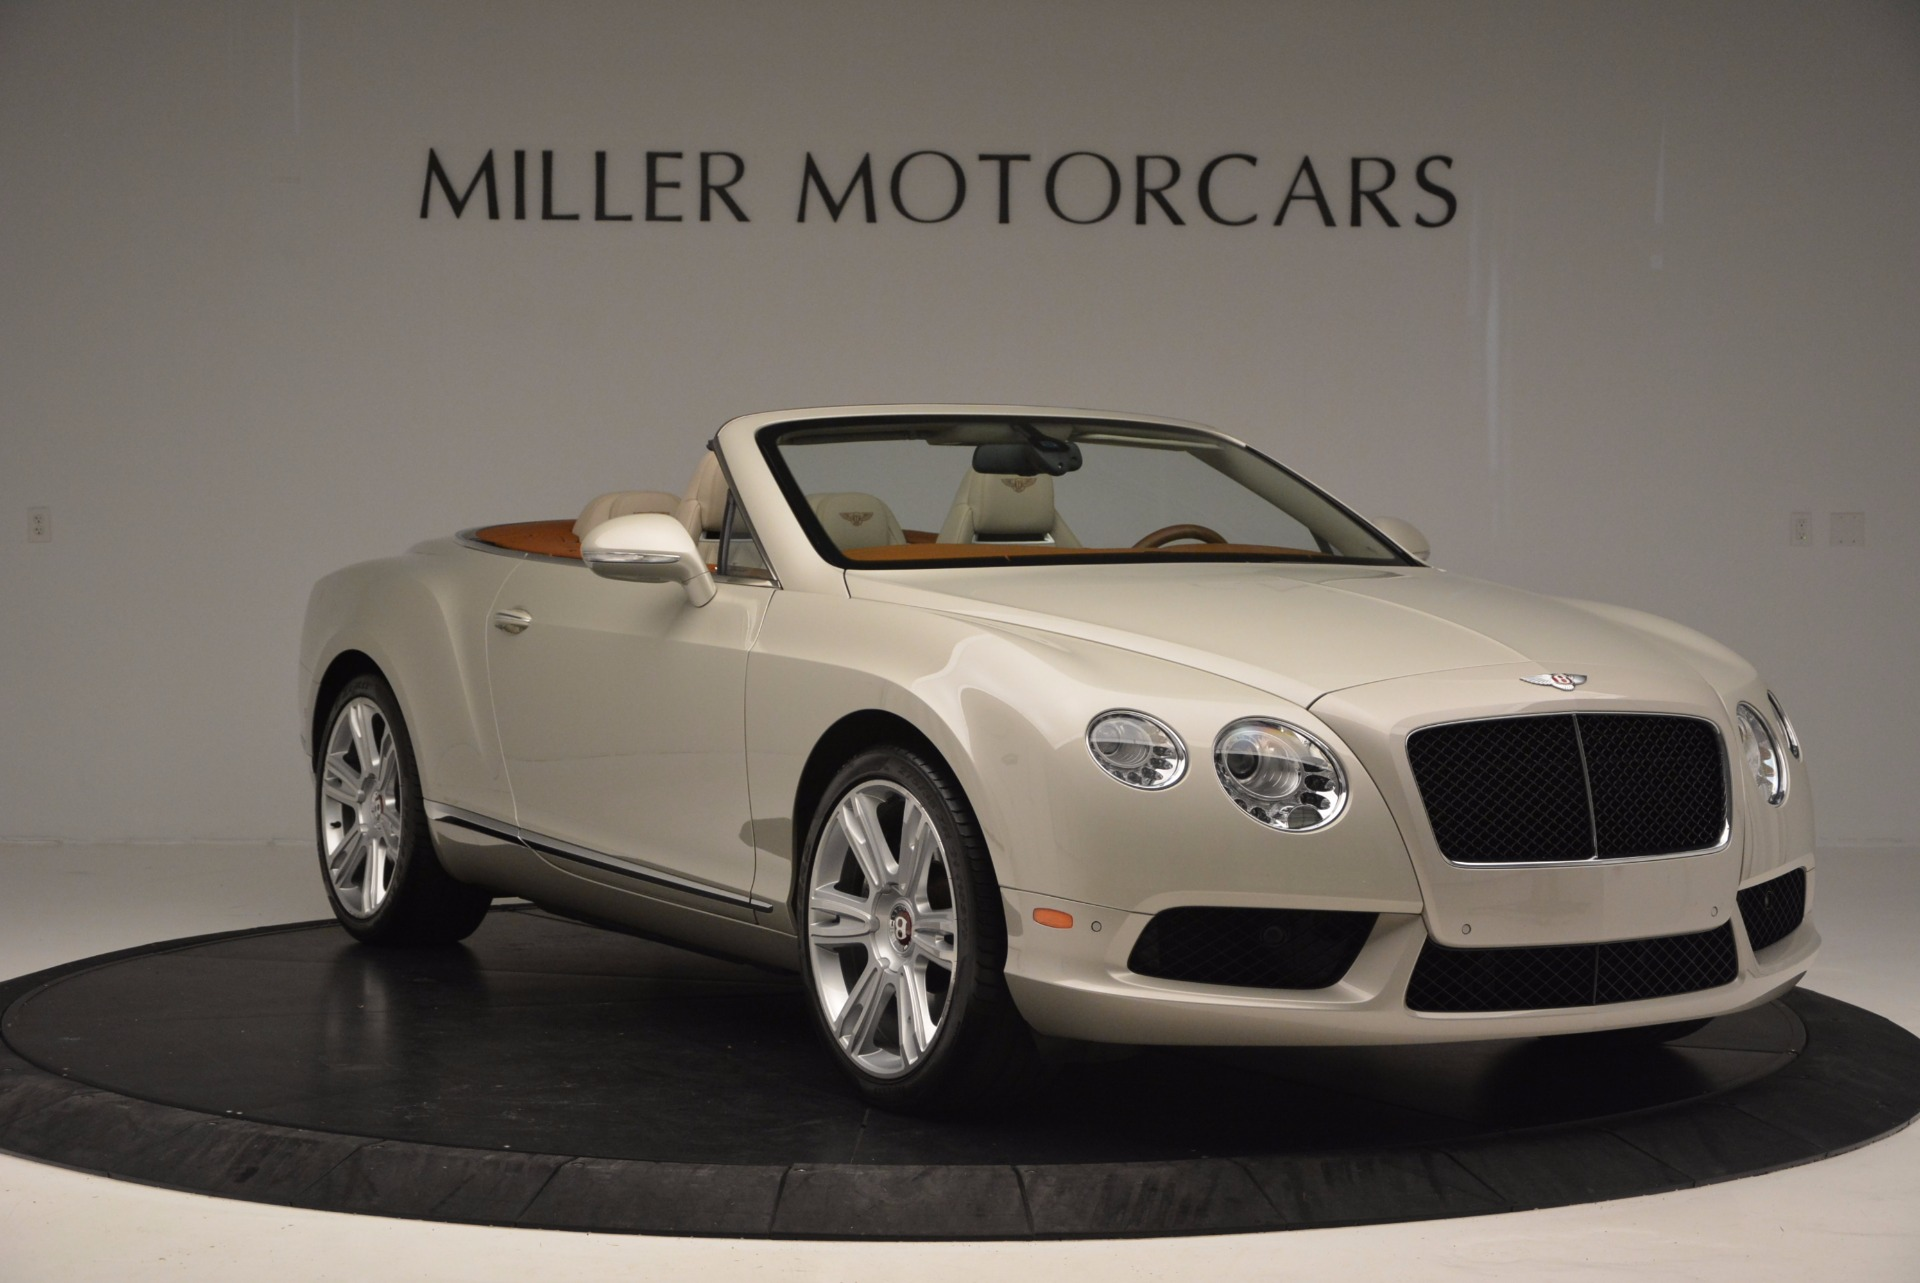 Used 2013 Bentley Continental GTC V8  For Sale In Greenwich, CT. Alfa Romeo of Greenwich, 7108 675_p11